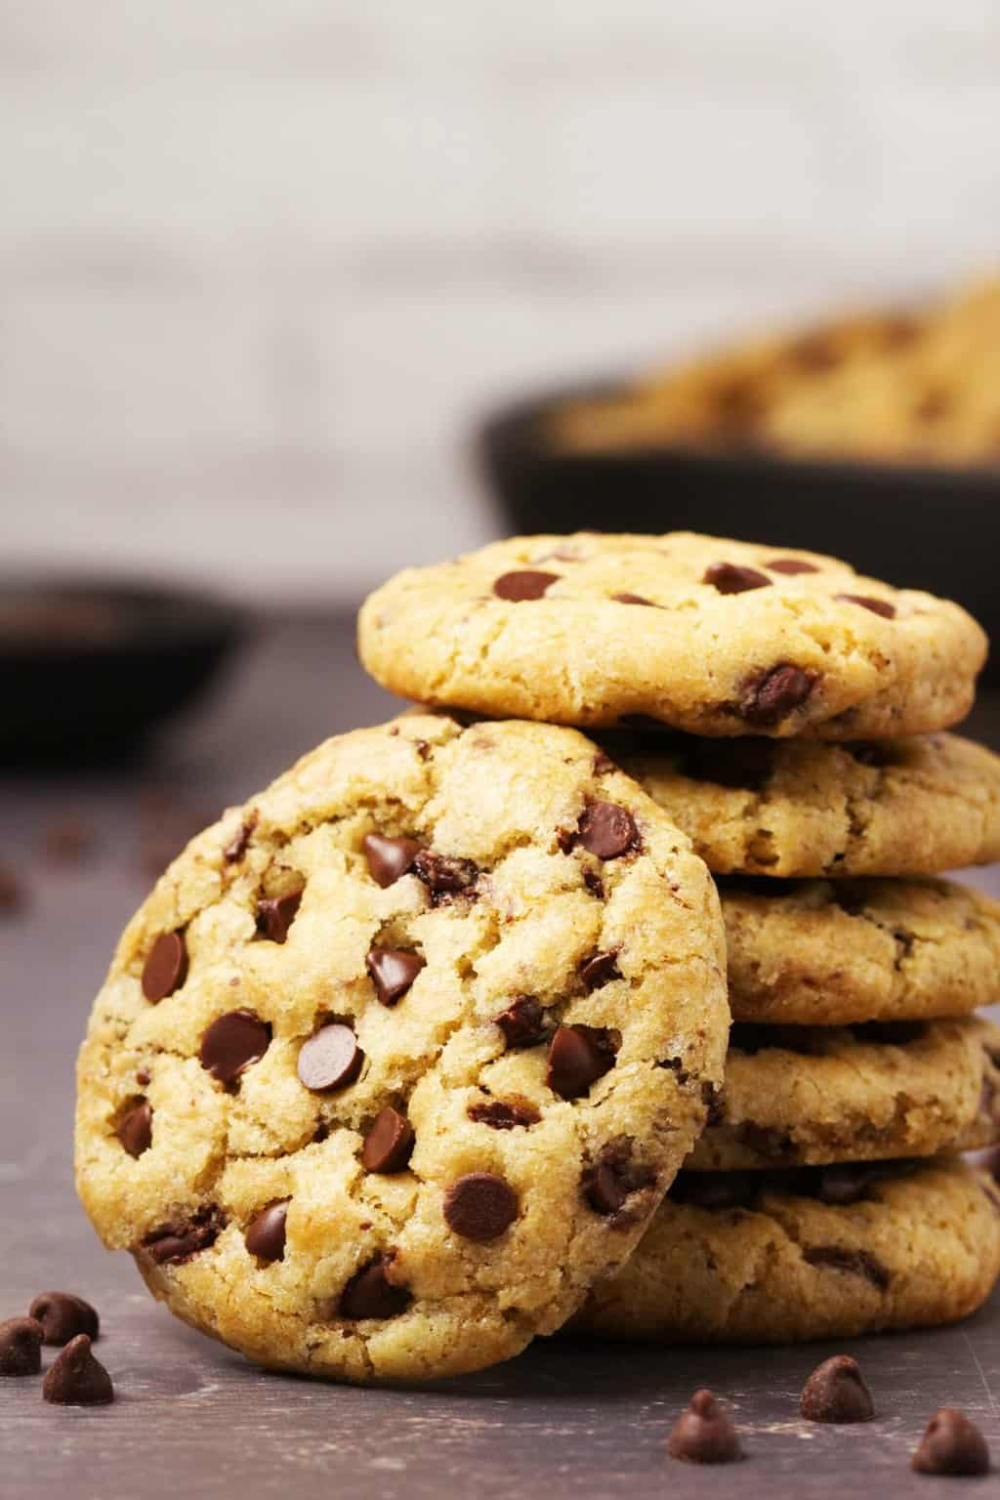 These Vegan Gluten Free Chocolate Chip Cookies Are So Good No One Will Ever Guess T Gluten Free Chocolate Chip Cookies Gluten Free Chocolate Chip Vegan Cookies